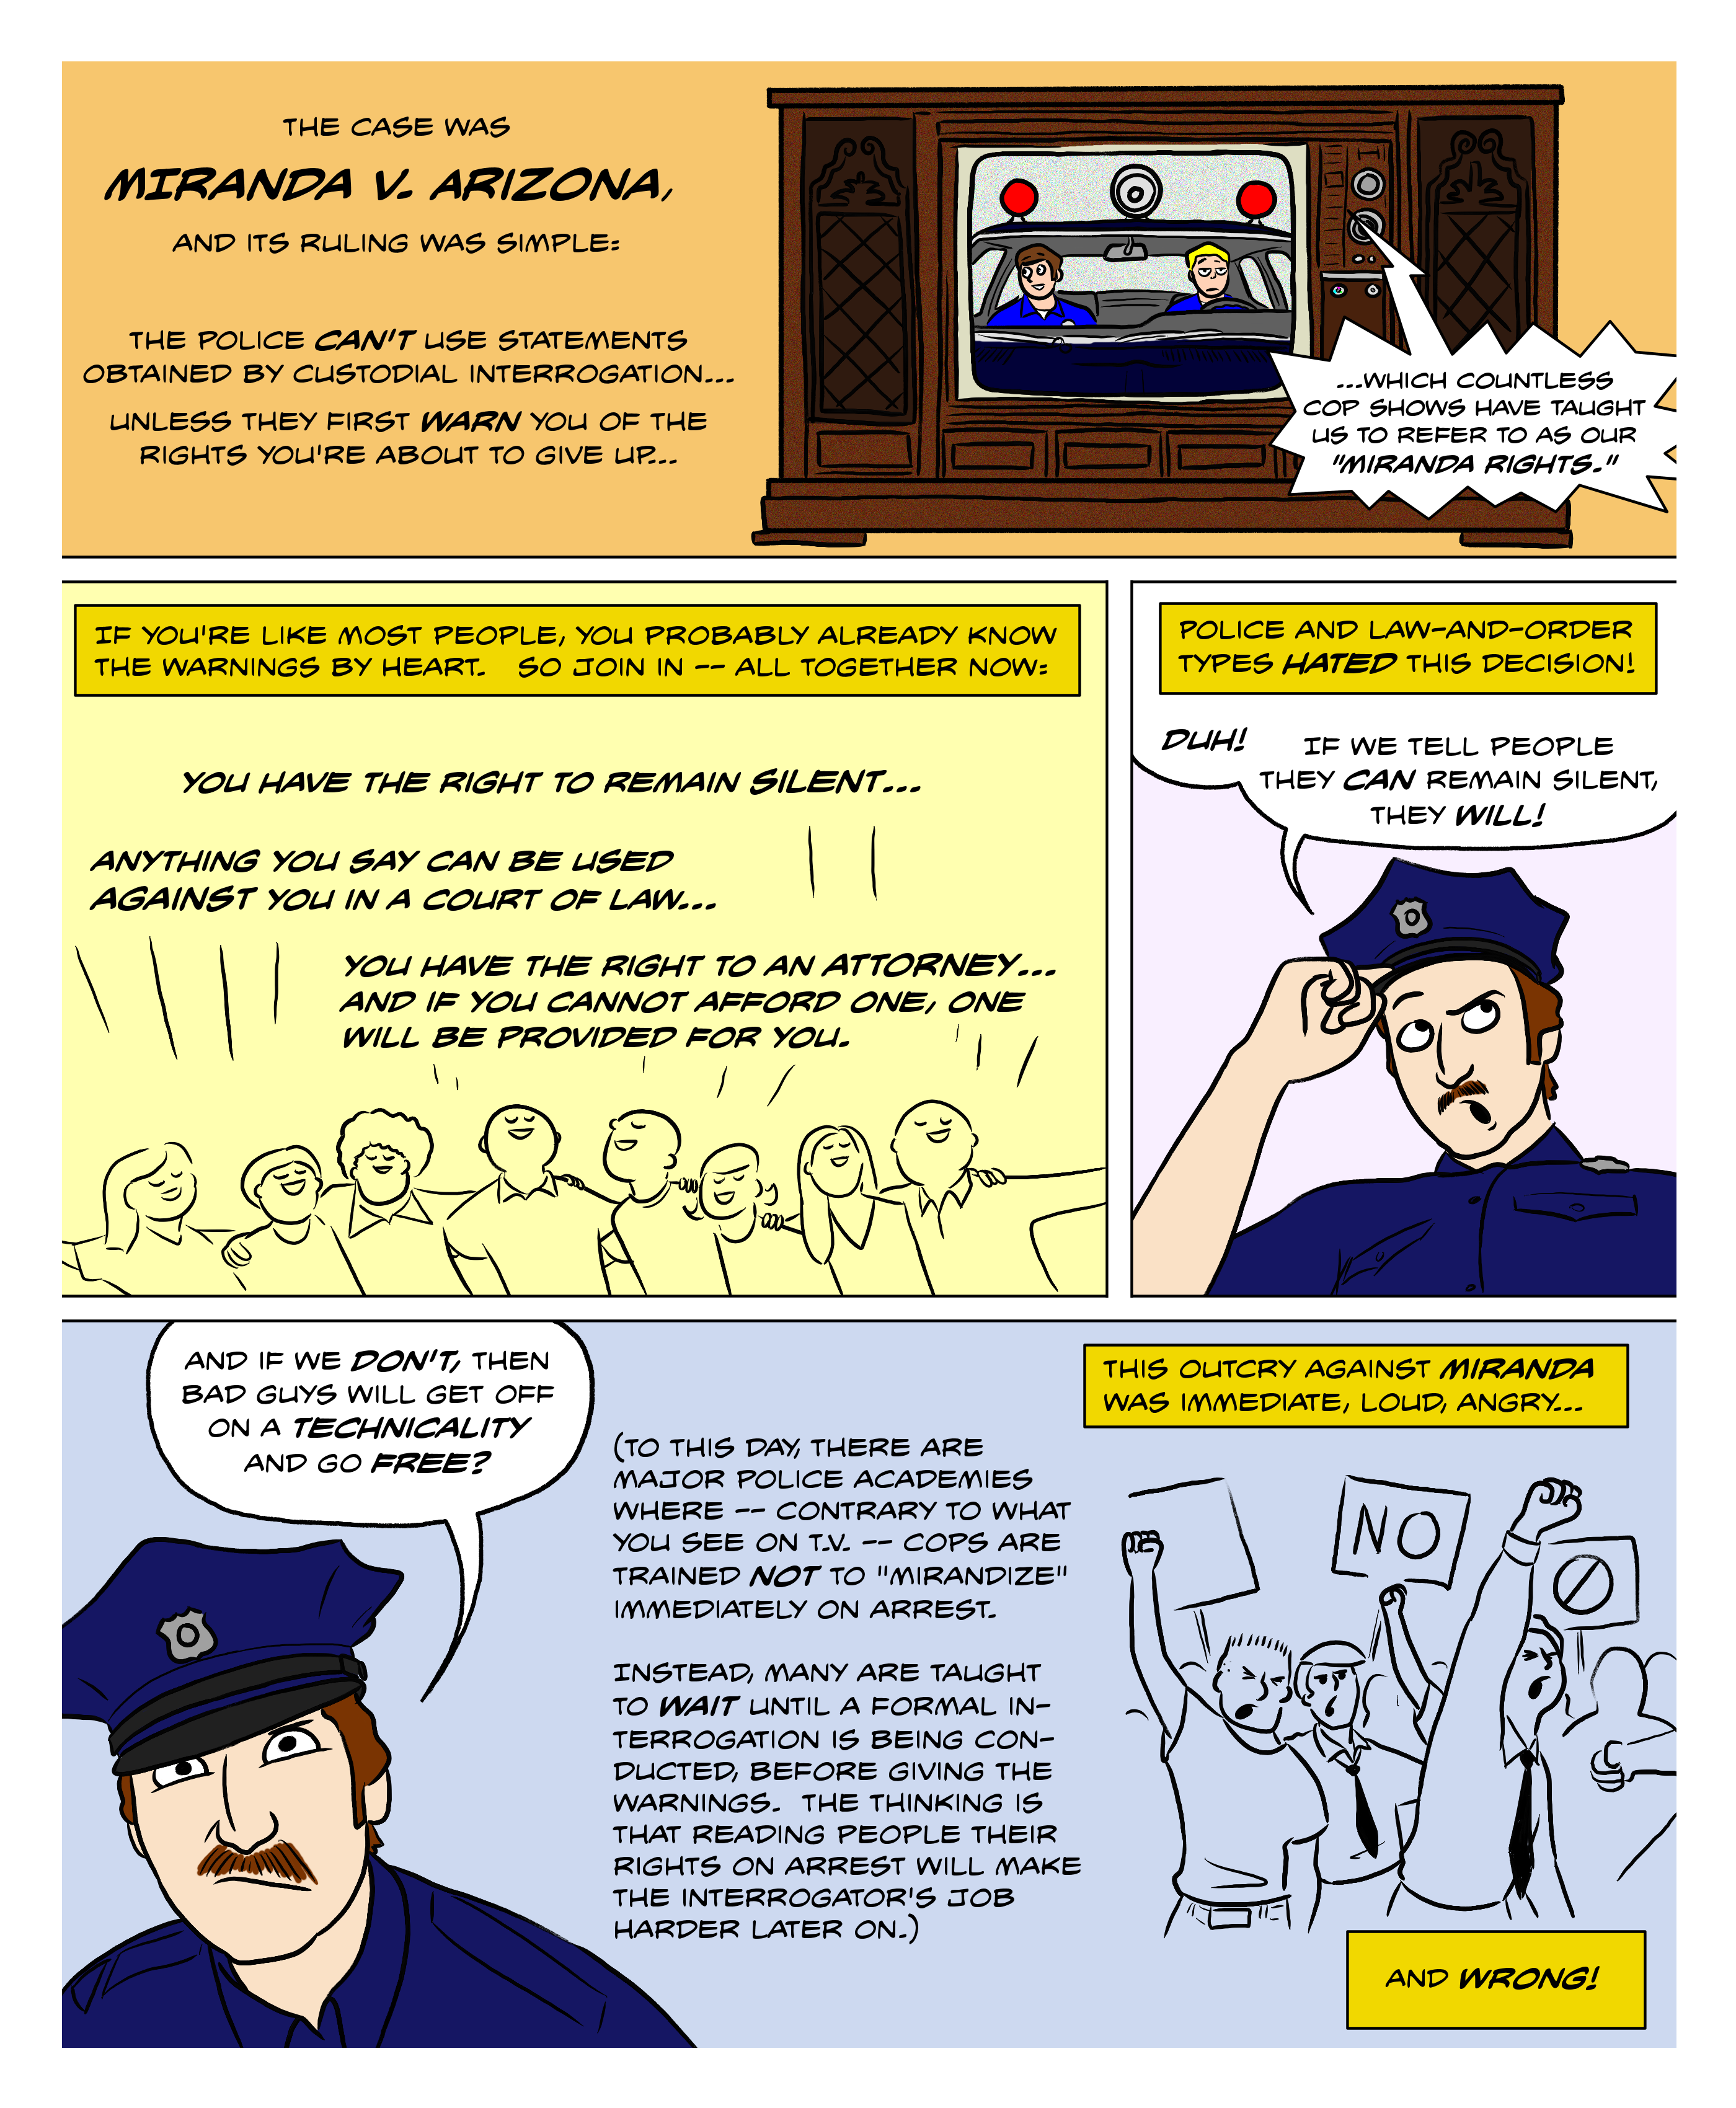 Miranda v. Arizona in 1966 said that the police cannot use statements obtained by custodial interrogation unless they first warn you that you have the right to remain silent, that your words can be used against you, and that you have the right to a lawyer. Police and law-and-order types hated this decision, thinking that it would make people decide not to talk, and let bad guys go free on a technicality. They got it exactly wrong.